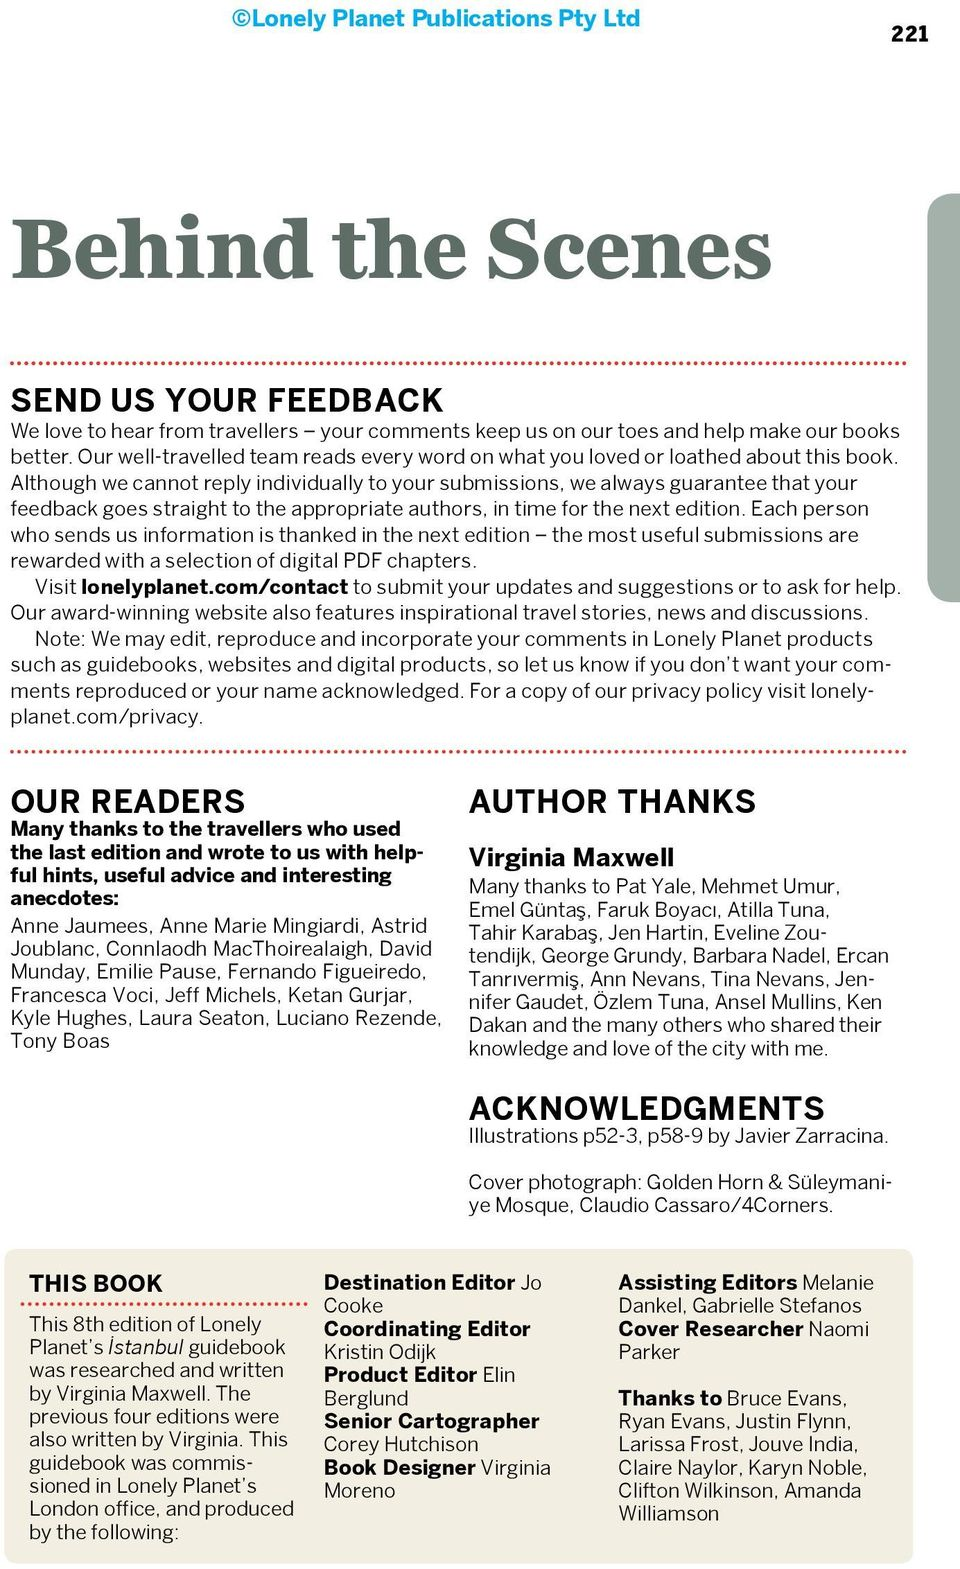 Although we cannot reply individually to your submissions, we always guarantee that your feedback goes straight to the appropriate authors, in time for the next edition.